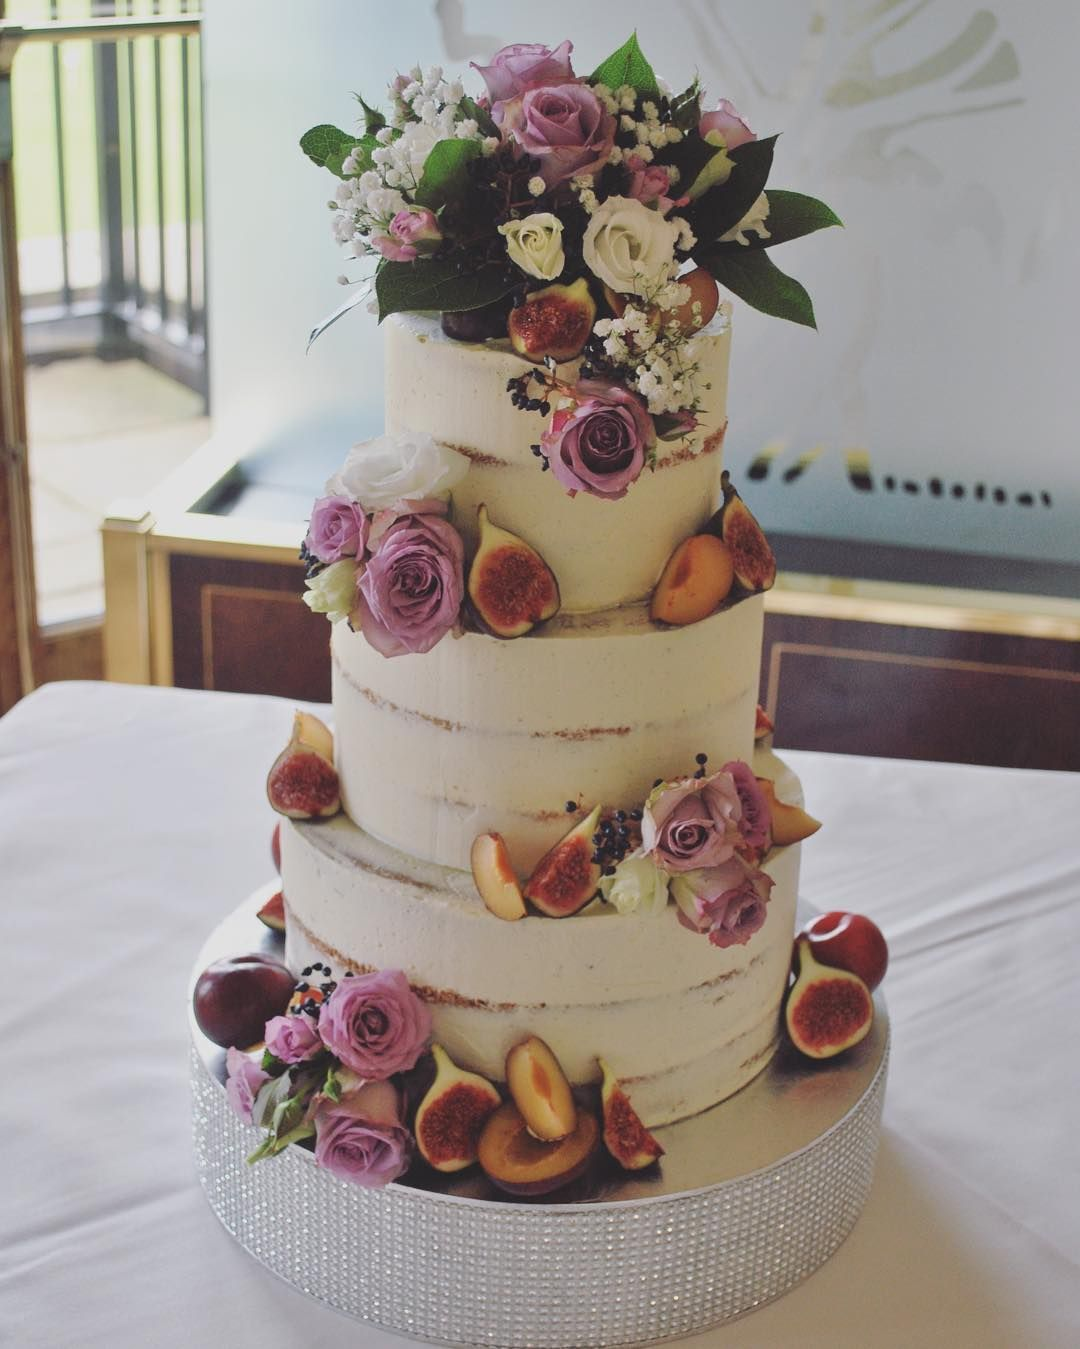 Wedding Cakes Inspired By China Patterns: Pin On Oh So Pretty Cake